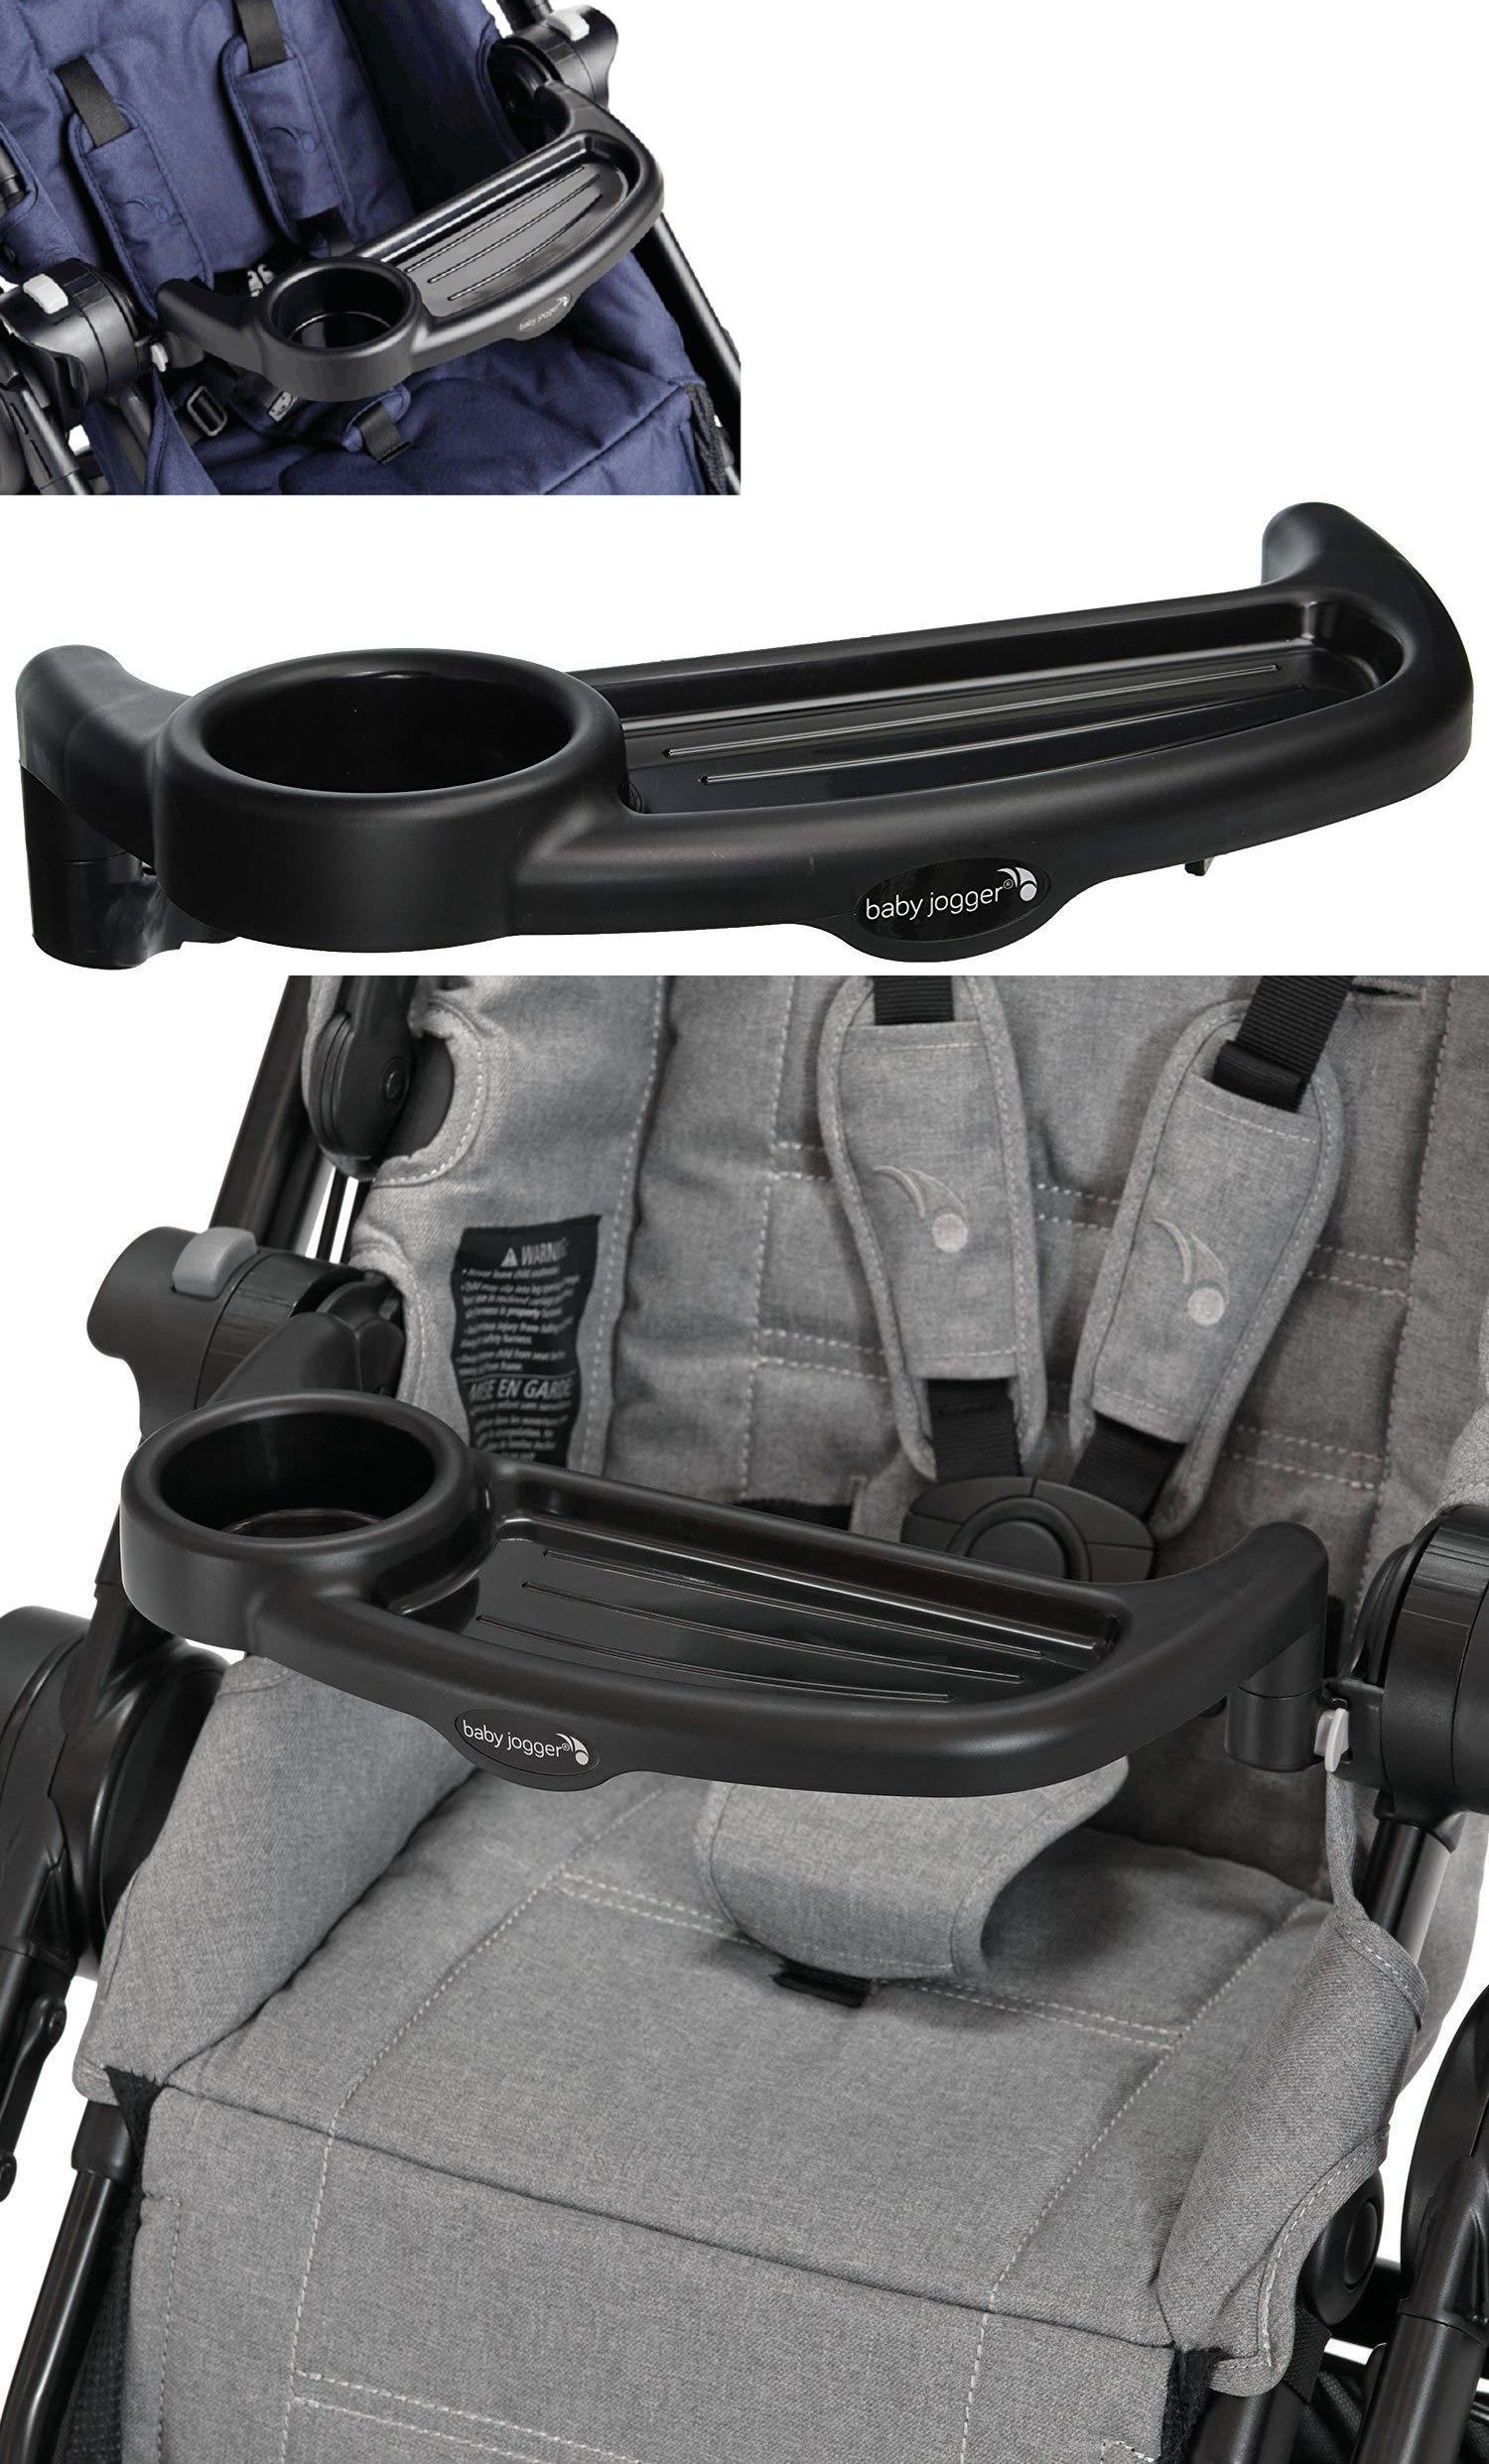 Stroller Accessories 180911 Baby Jogger Child Tray For City Select